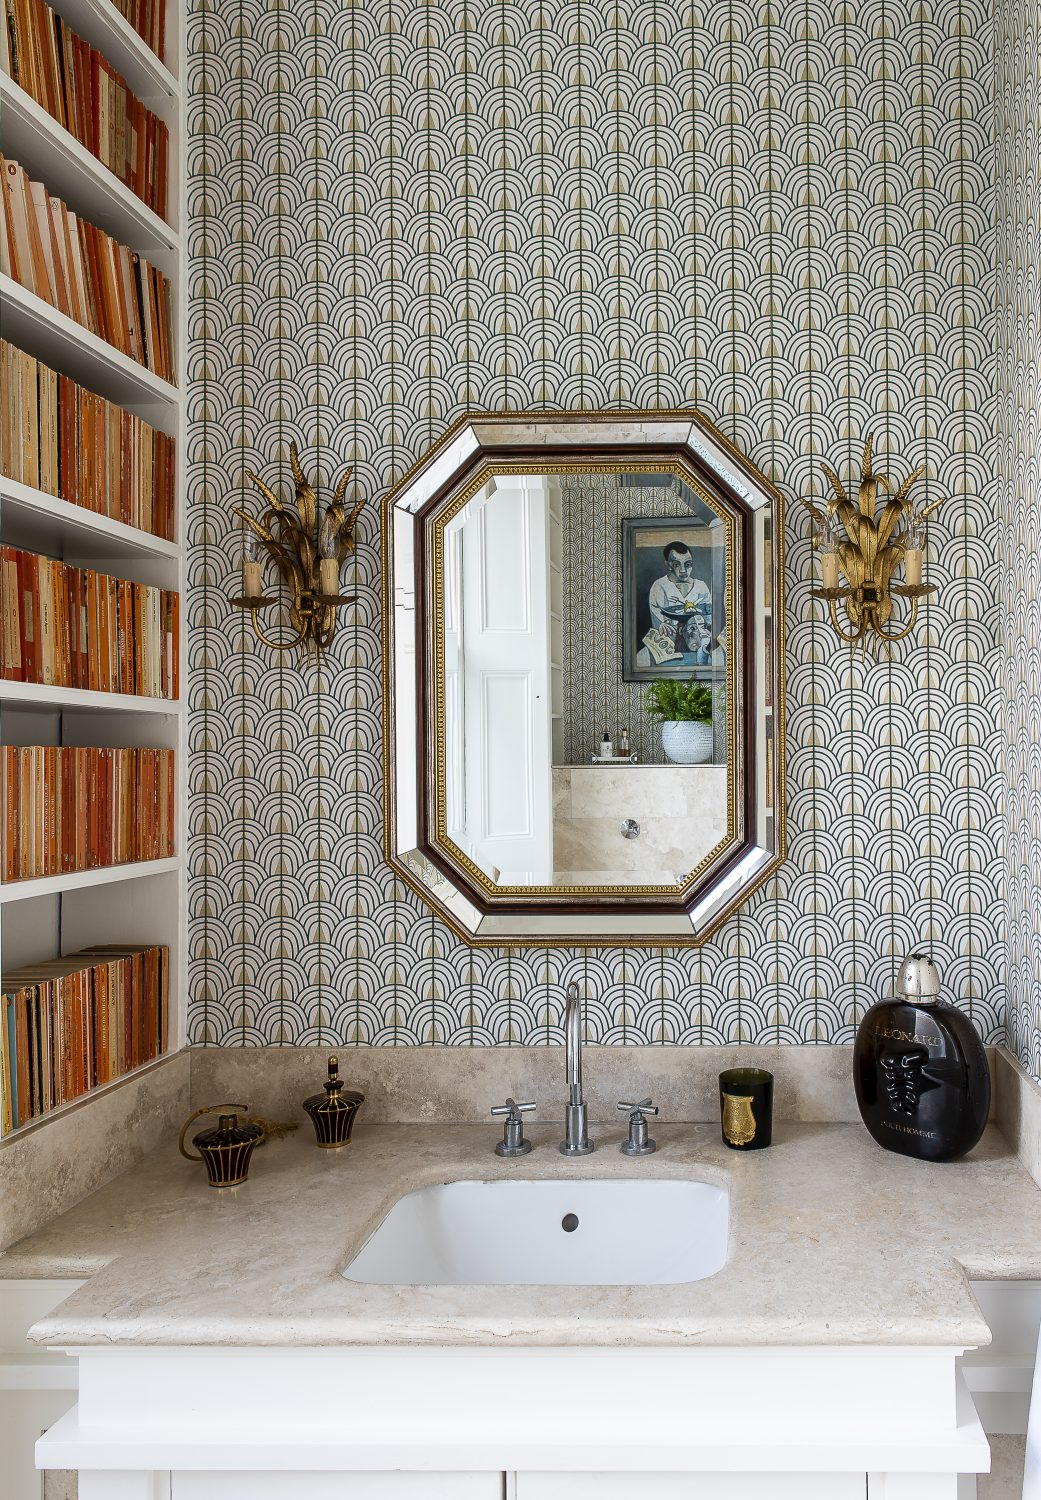 The downstairs loo has been decorated in a stylish contemporary geometric printed wallpaper. A bookcase is packed with Penguin classics, which Olya sourced from eBay. The marble sink is flanked by two wheatsheaf lighting sconces that sit either side of an antique mirror